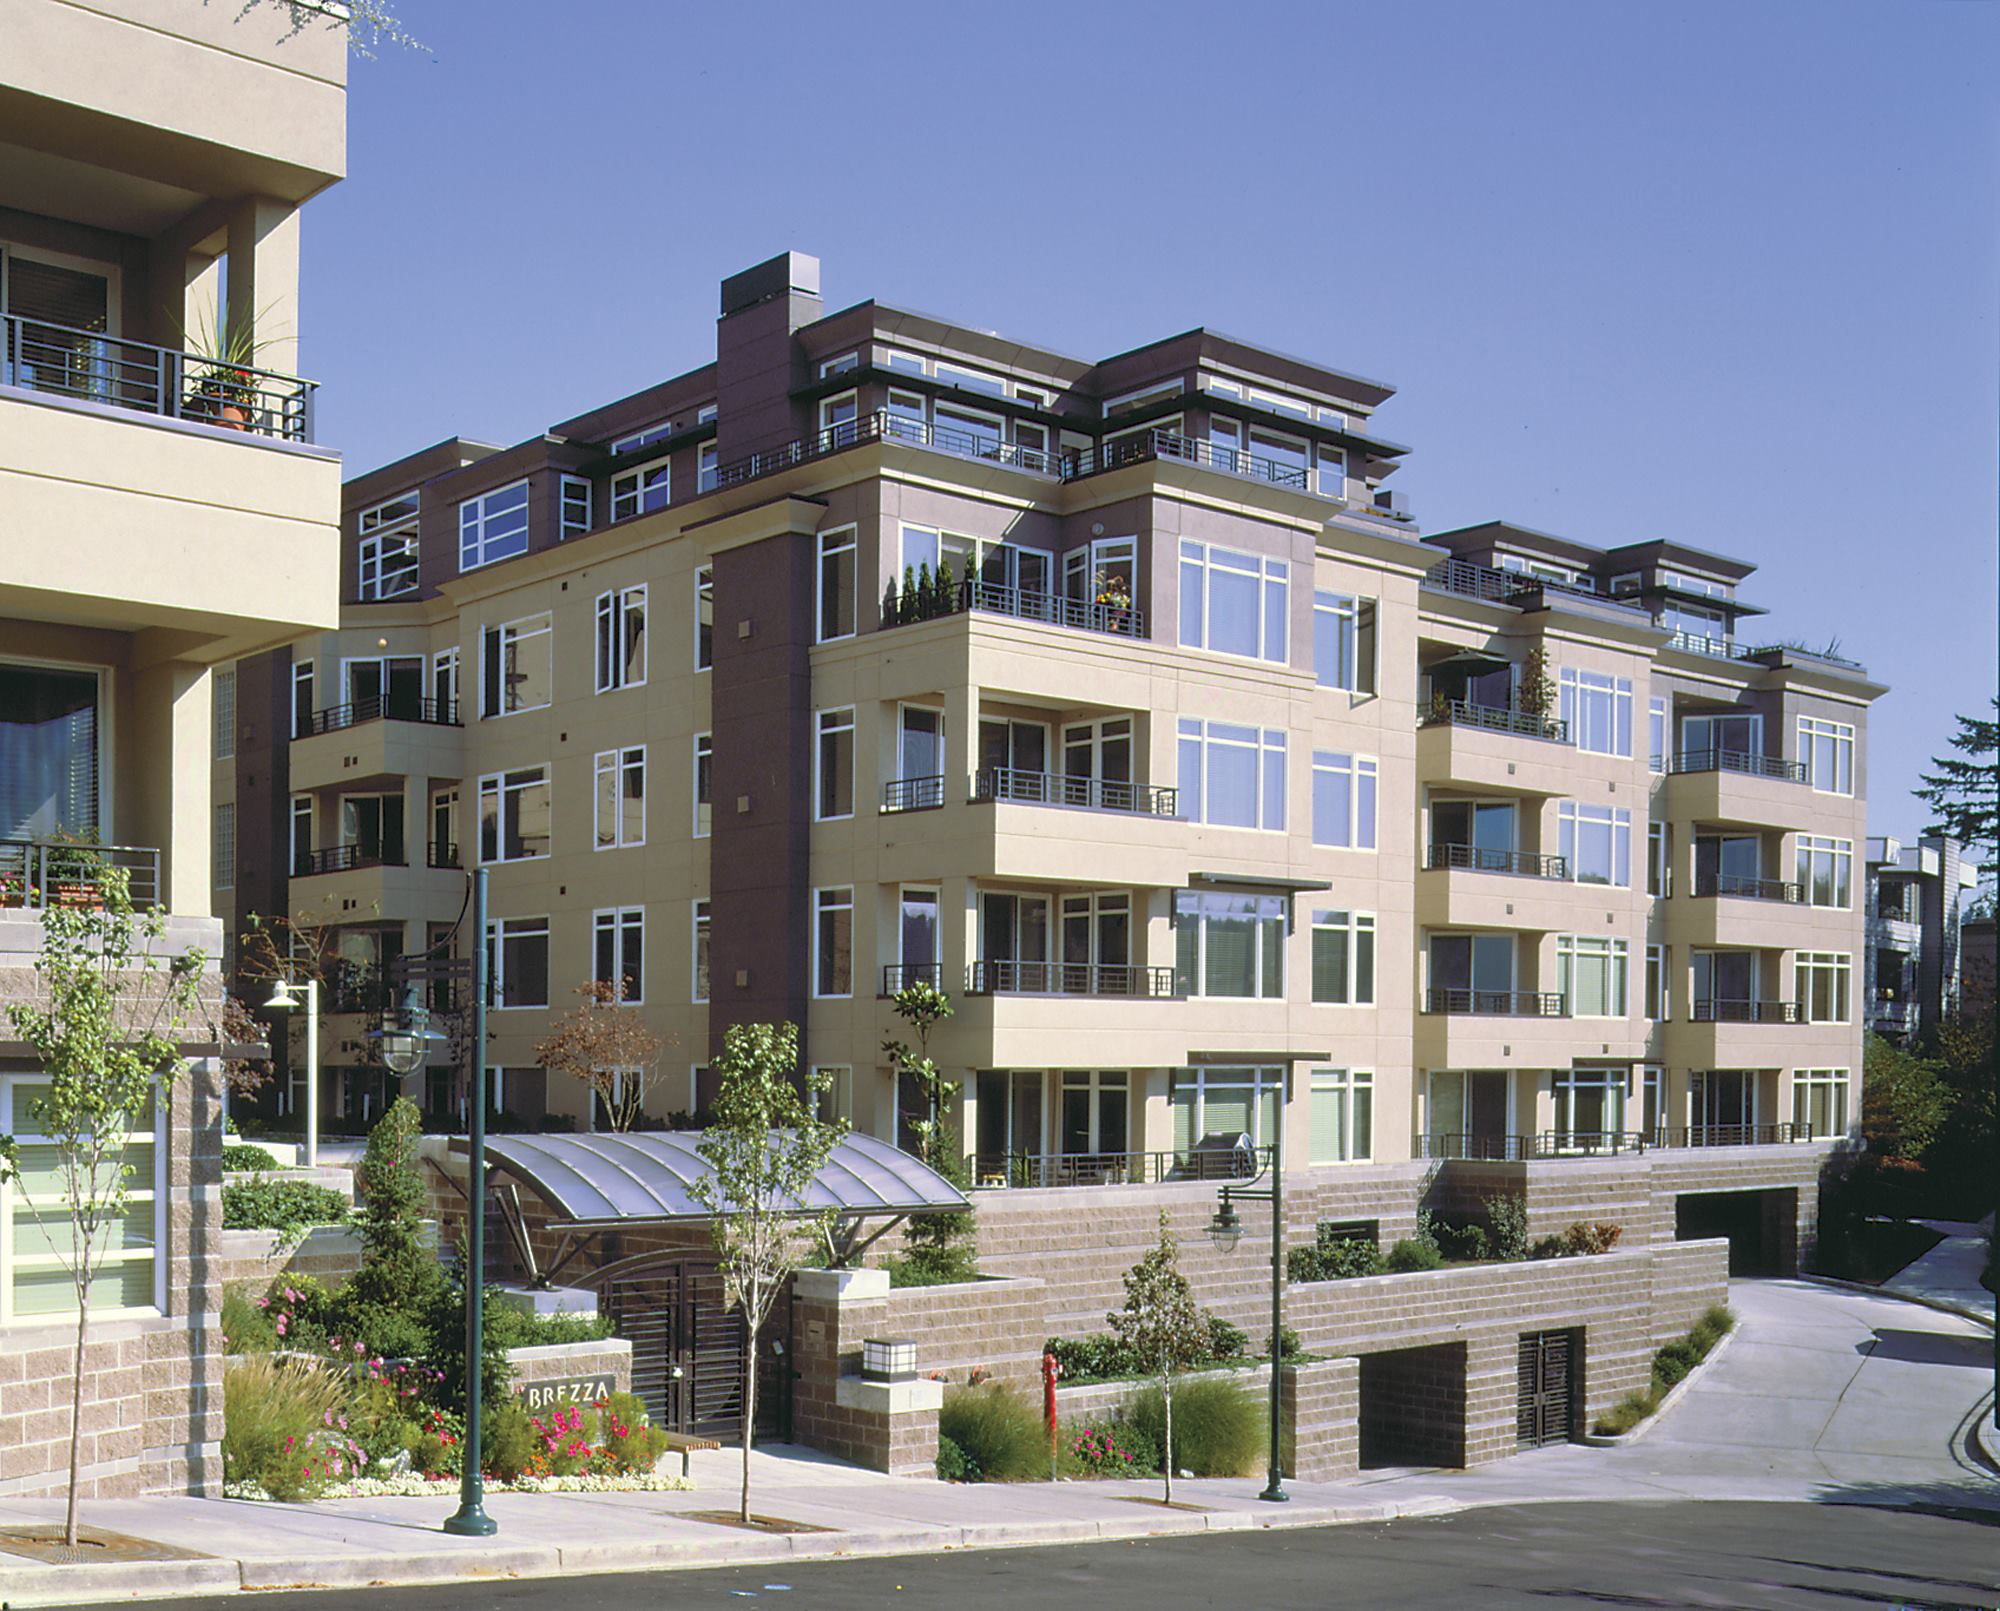 Brezza condominiums kirkland wash residential for Residential architect design awards